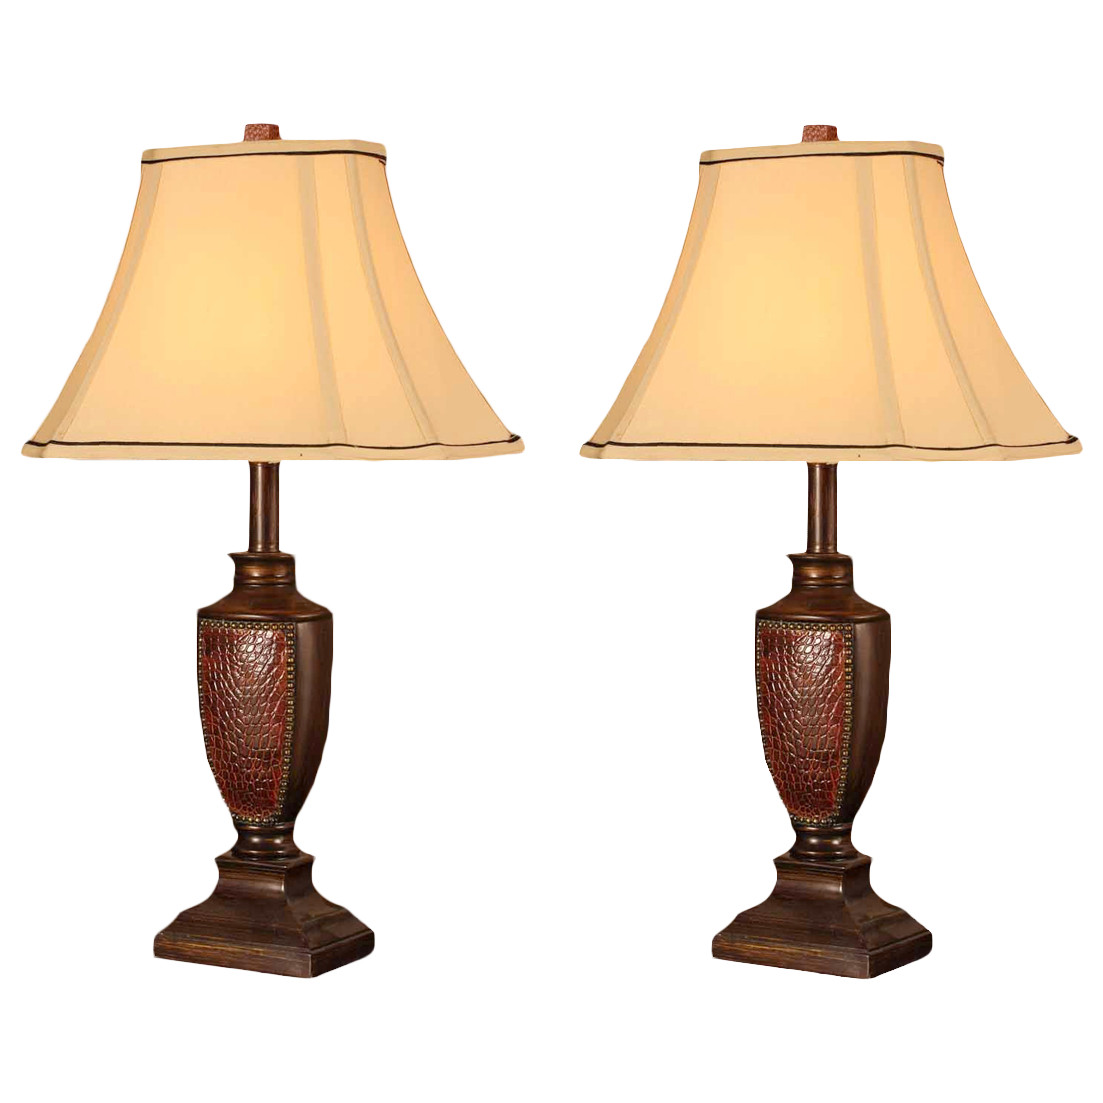 Aubri Table Lamp Set, Brush Red Body & Light Brown Fabric Square Shade, Contemporary, (Set Of 2)